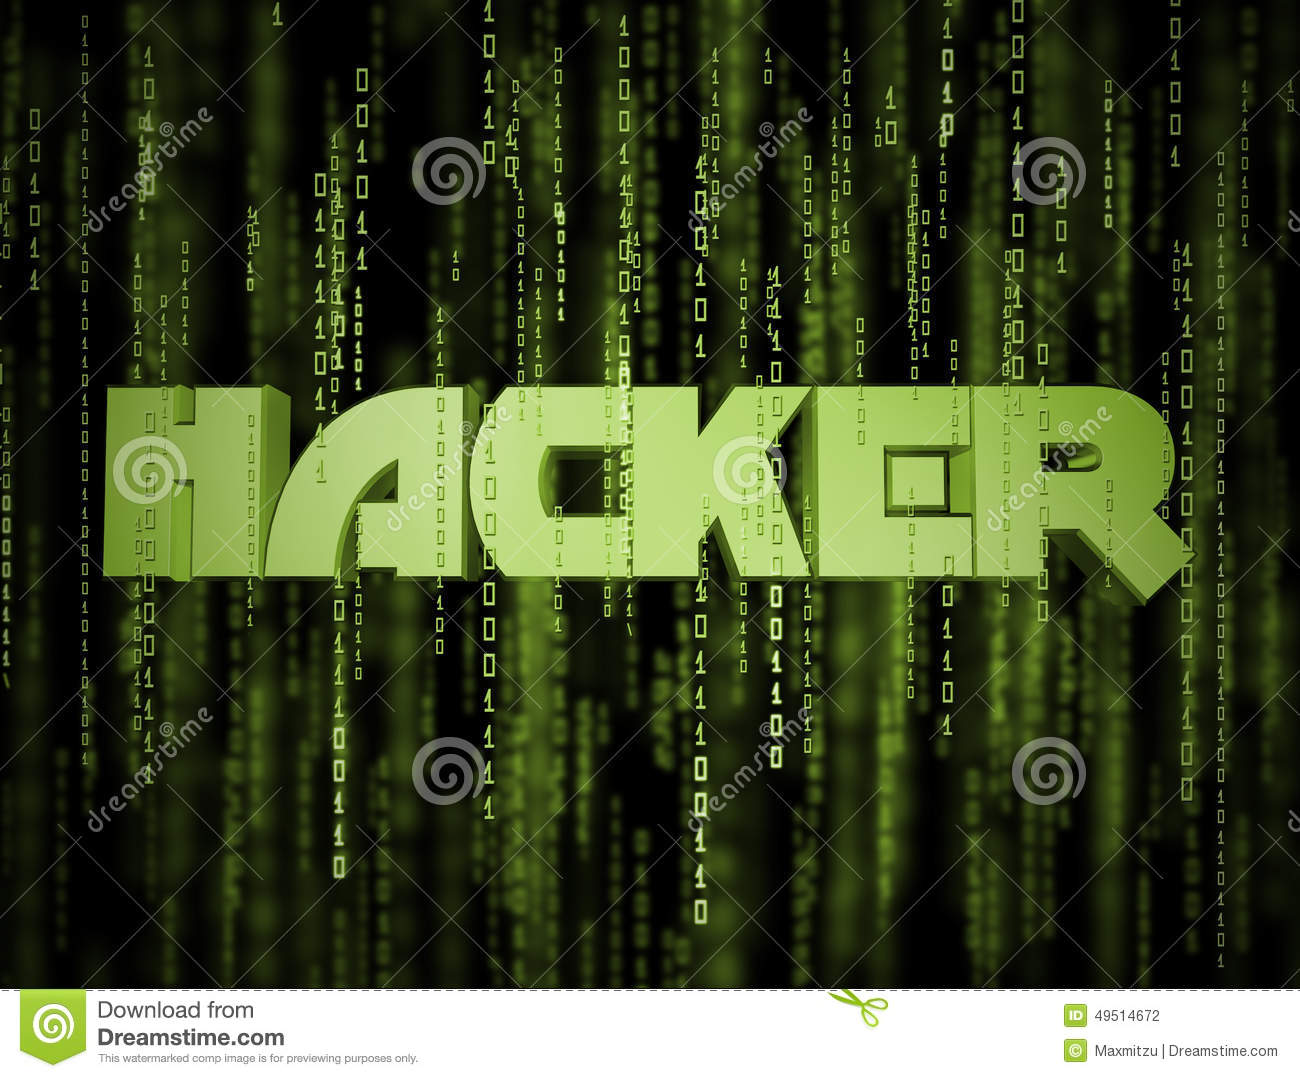 3D Hacker Matrix Stock Illustration - Image: 49514672